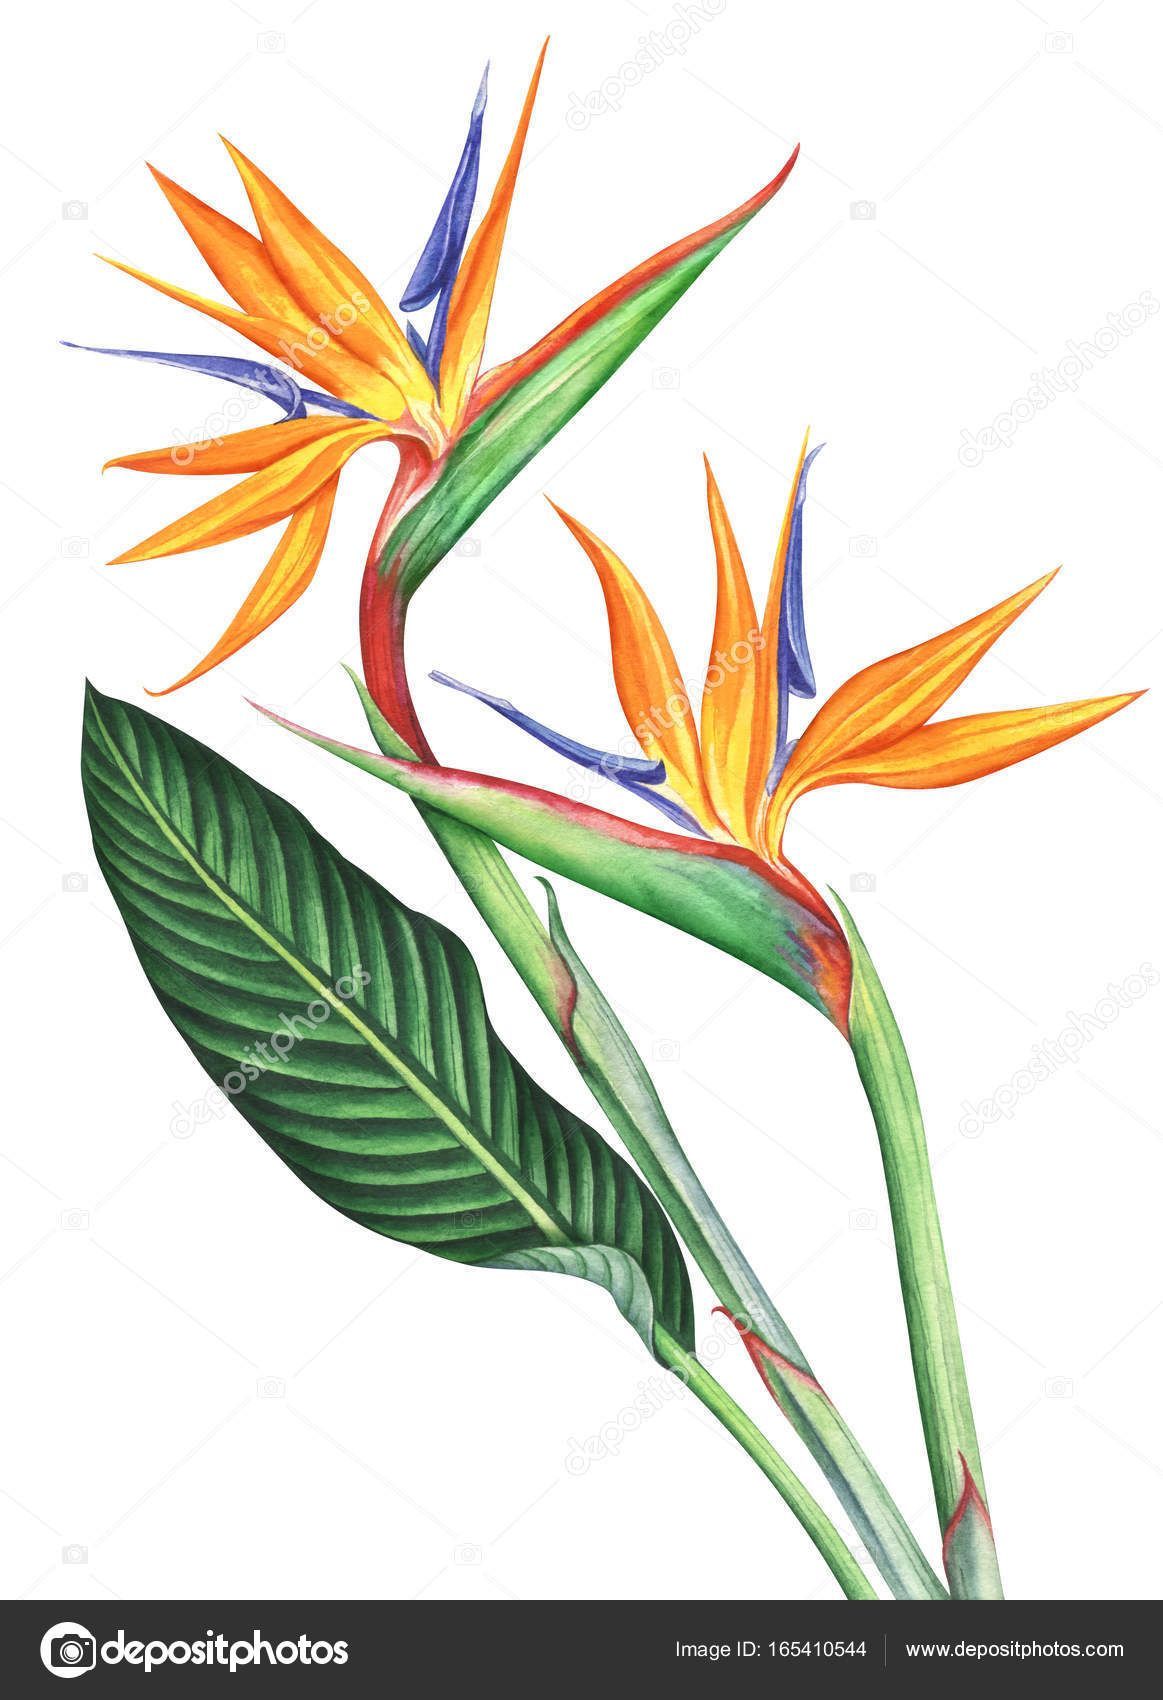 Download Watercolor Bird Of Paradise Flowers Isolated On White Background Stock Image Birds Of Paradise Flower Paradise Painting Watercolor Illustration